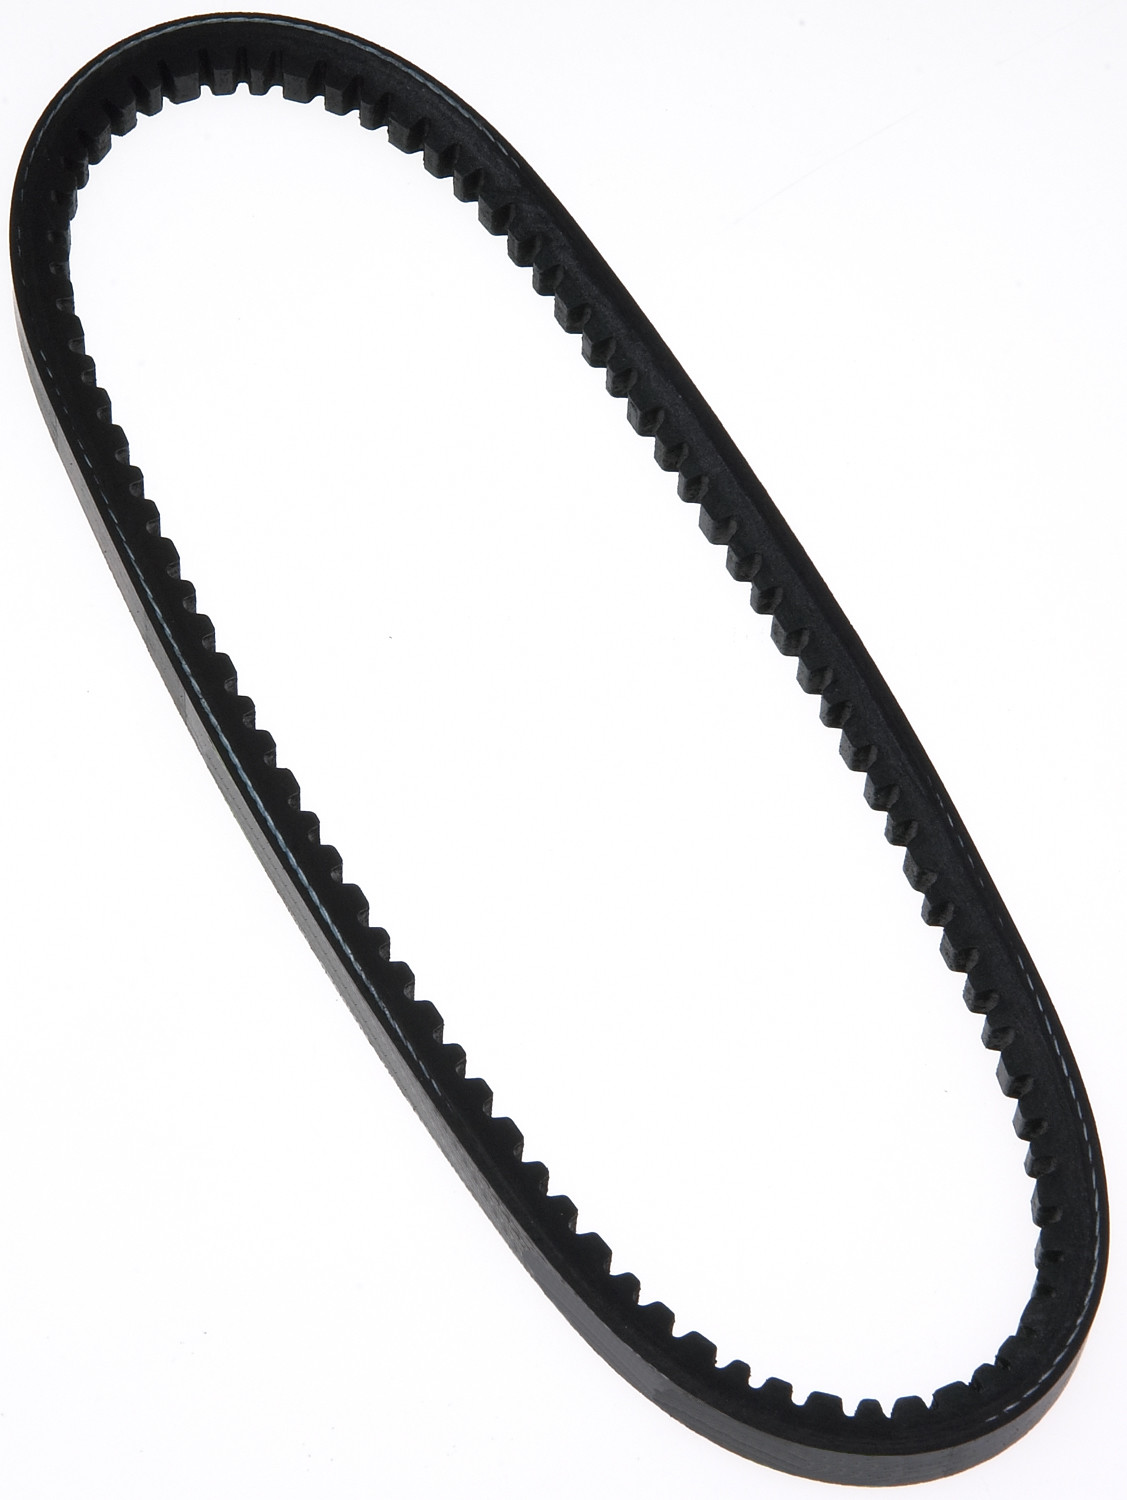 ROADMAX - High Capacity V-belt(standard) - RMX 17360AP